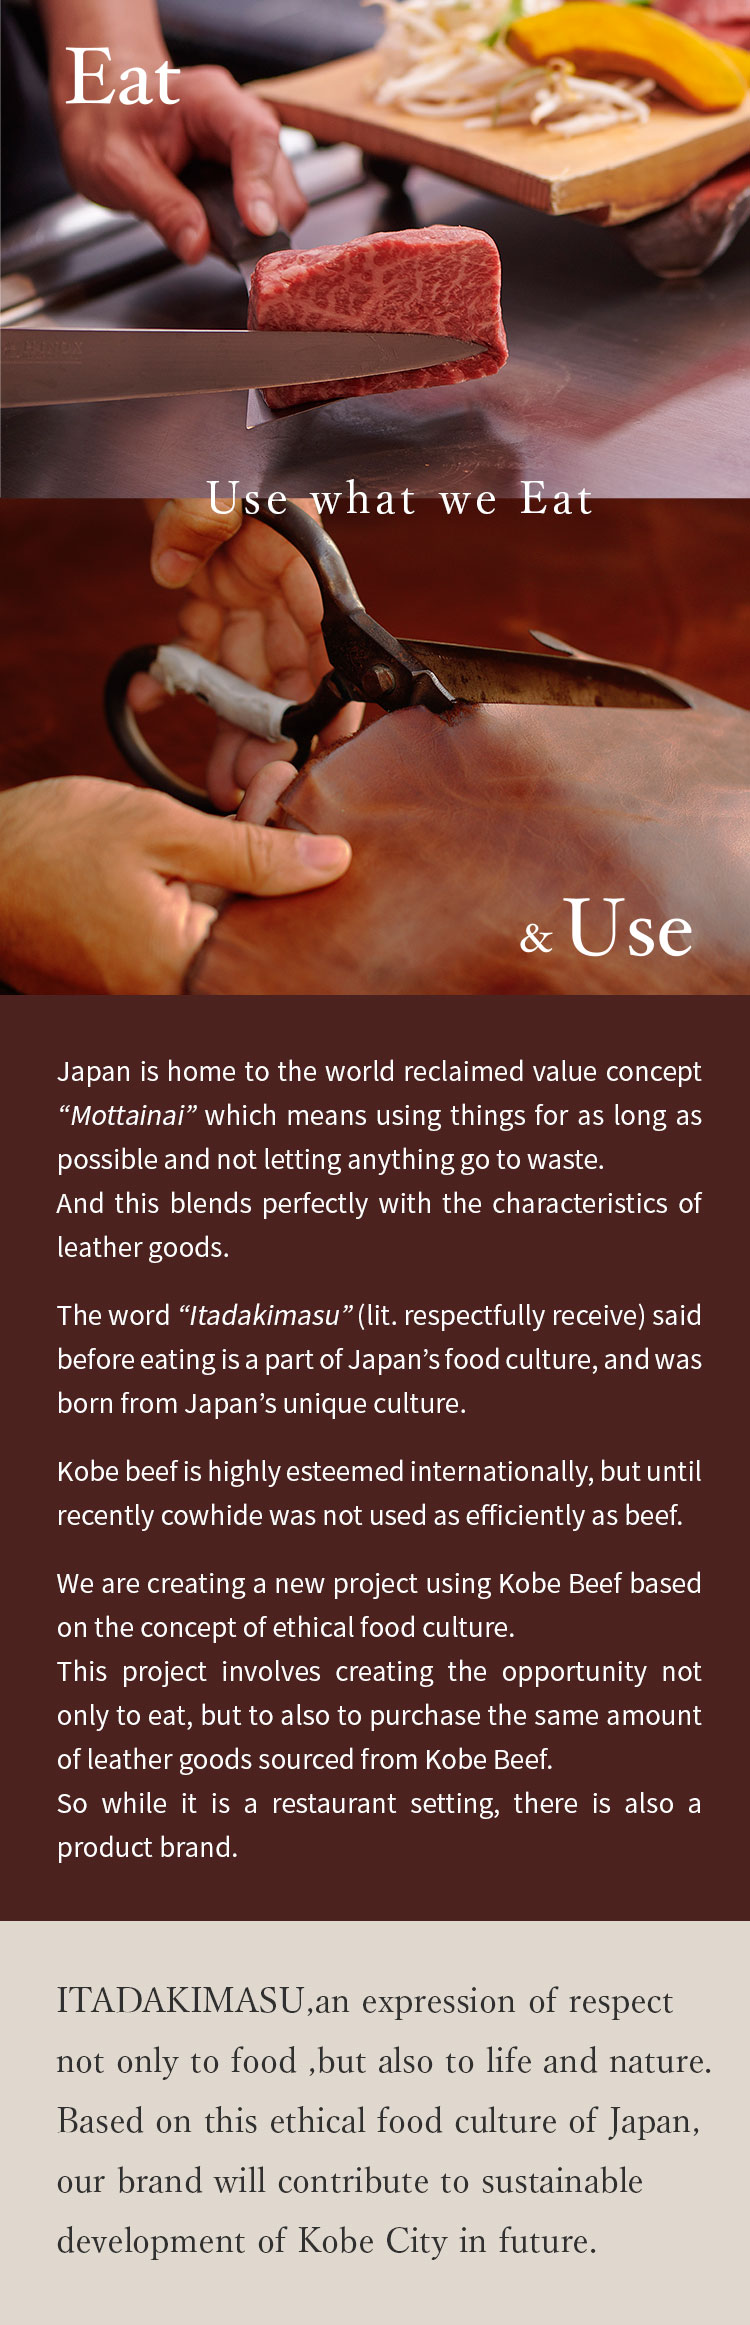 "Use what we Eat  Japan is home to the world reclaimed value concept ""Mottainai"" which means using things for as long as possible and not letting anything go to waste.  And this blends perfectly with the characteristics of leather goods.   The word ""Itadakimasu"" (lit. respectfully receive) said before eating is a part of Japan's food culture, and was born from Japan's unique culture.  Kobe beef is highly esteemed internationally, but until recently cowhide was not used as efficiently as beef.  We are creating a new project using Kobe Beef based on the concept of ethical food culture. This project involves creating the opportunity not only to eat, but to also to purchase the same amount of leather goods sourced from Kobe Beef.  So while it is a restaurant setting, there is also a product brand.  ITADAKIMASU,an expression of respect not only to food ,but also to life and nature. Based on this ethical food culture of Japan,our brand will contribute to sustainable development of Kobe City in future."